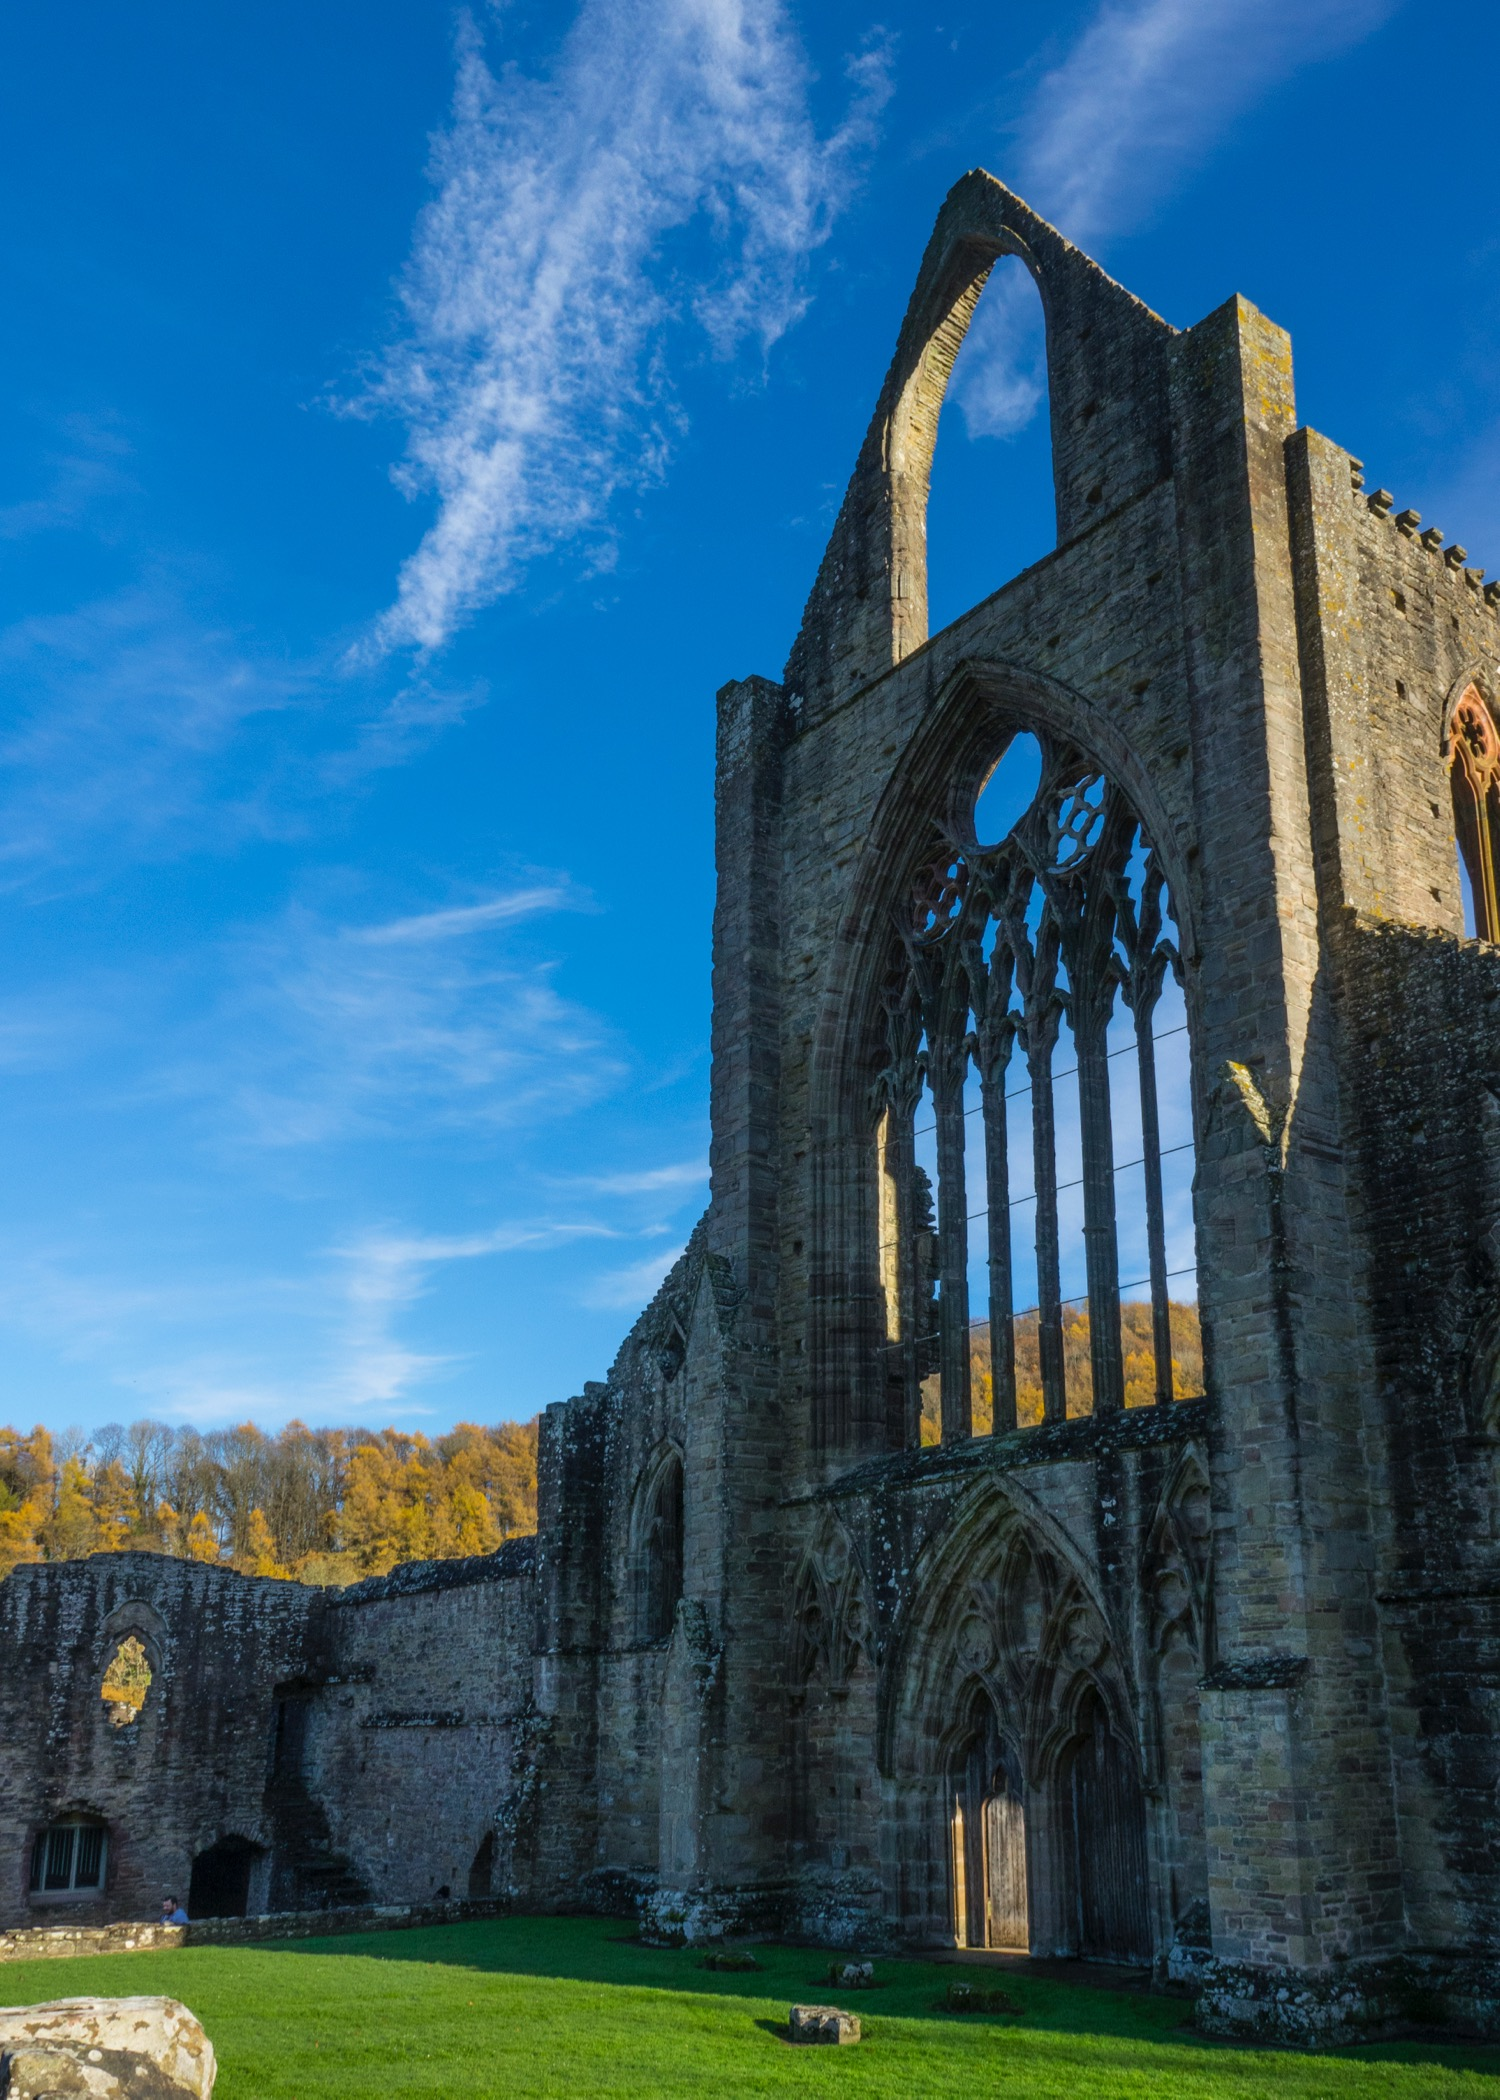 One of the facades of the ruins of Tintern Abbey